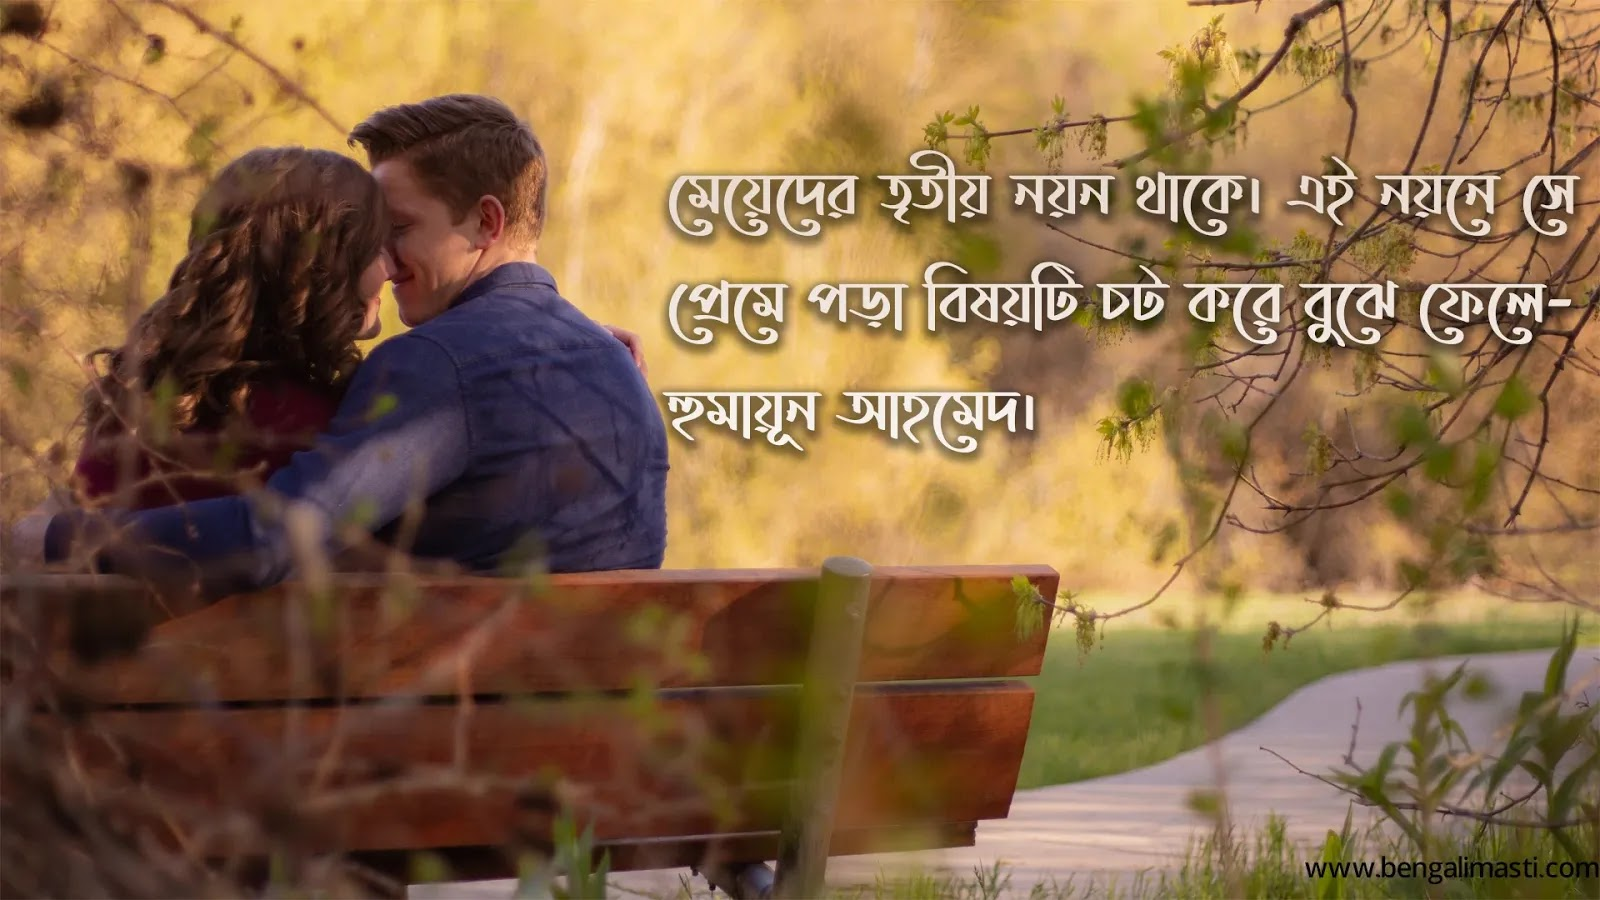 bengali sad quotes images